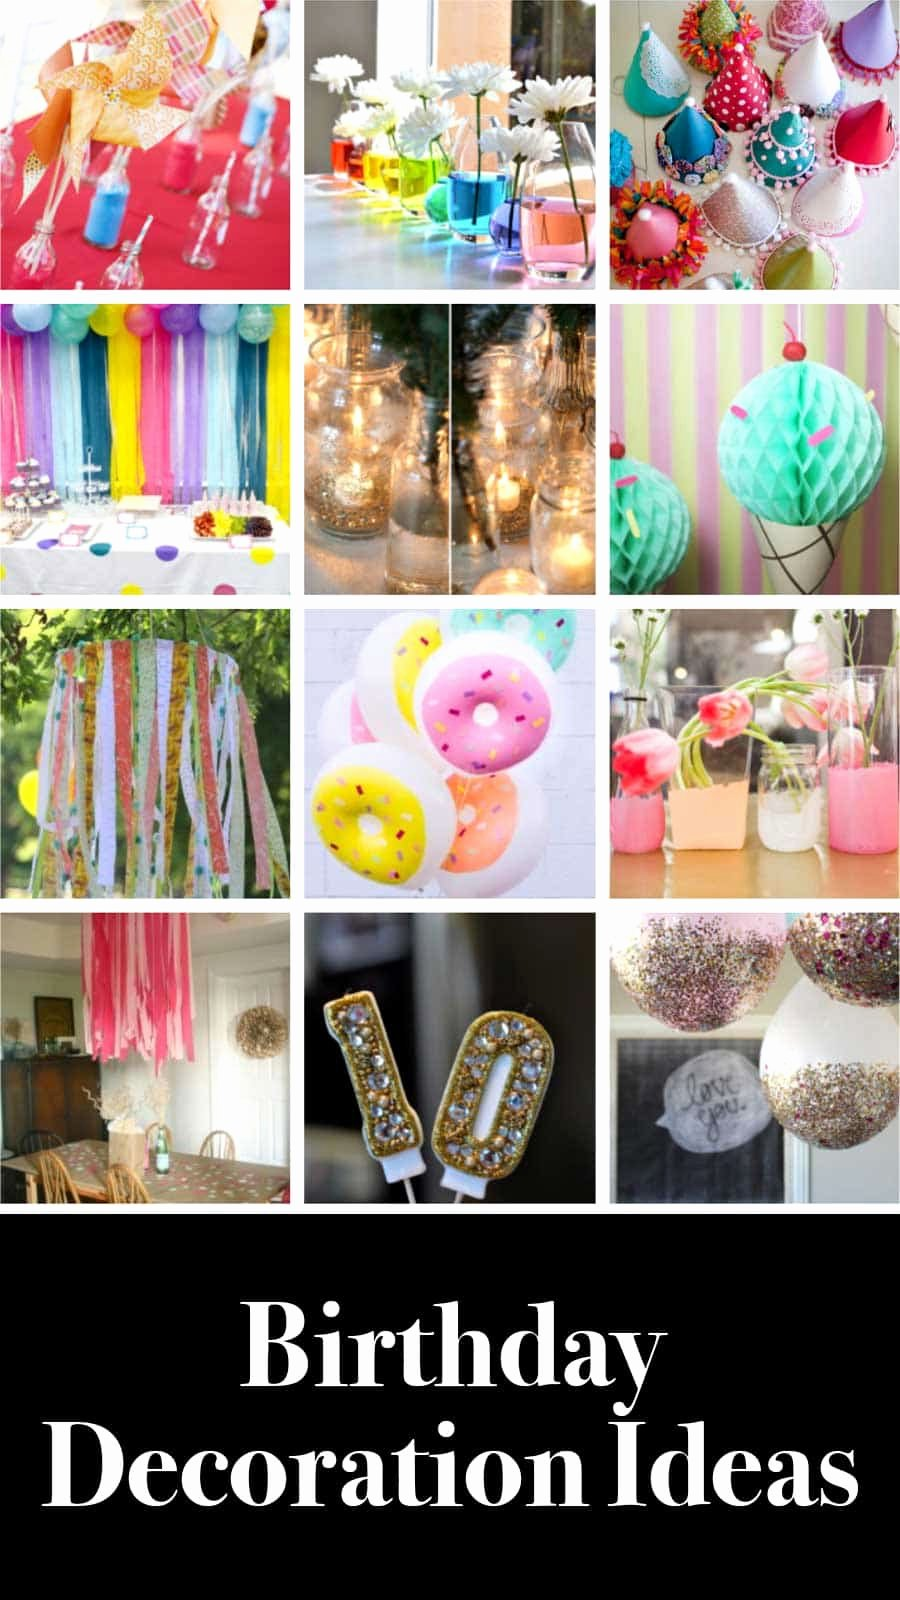 Easy Birthday Decoration Ideas at Home Unique 12 Easy Diy Birthday Decoration Ideas 2020